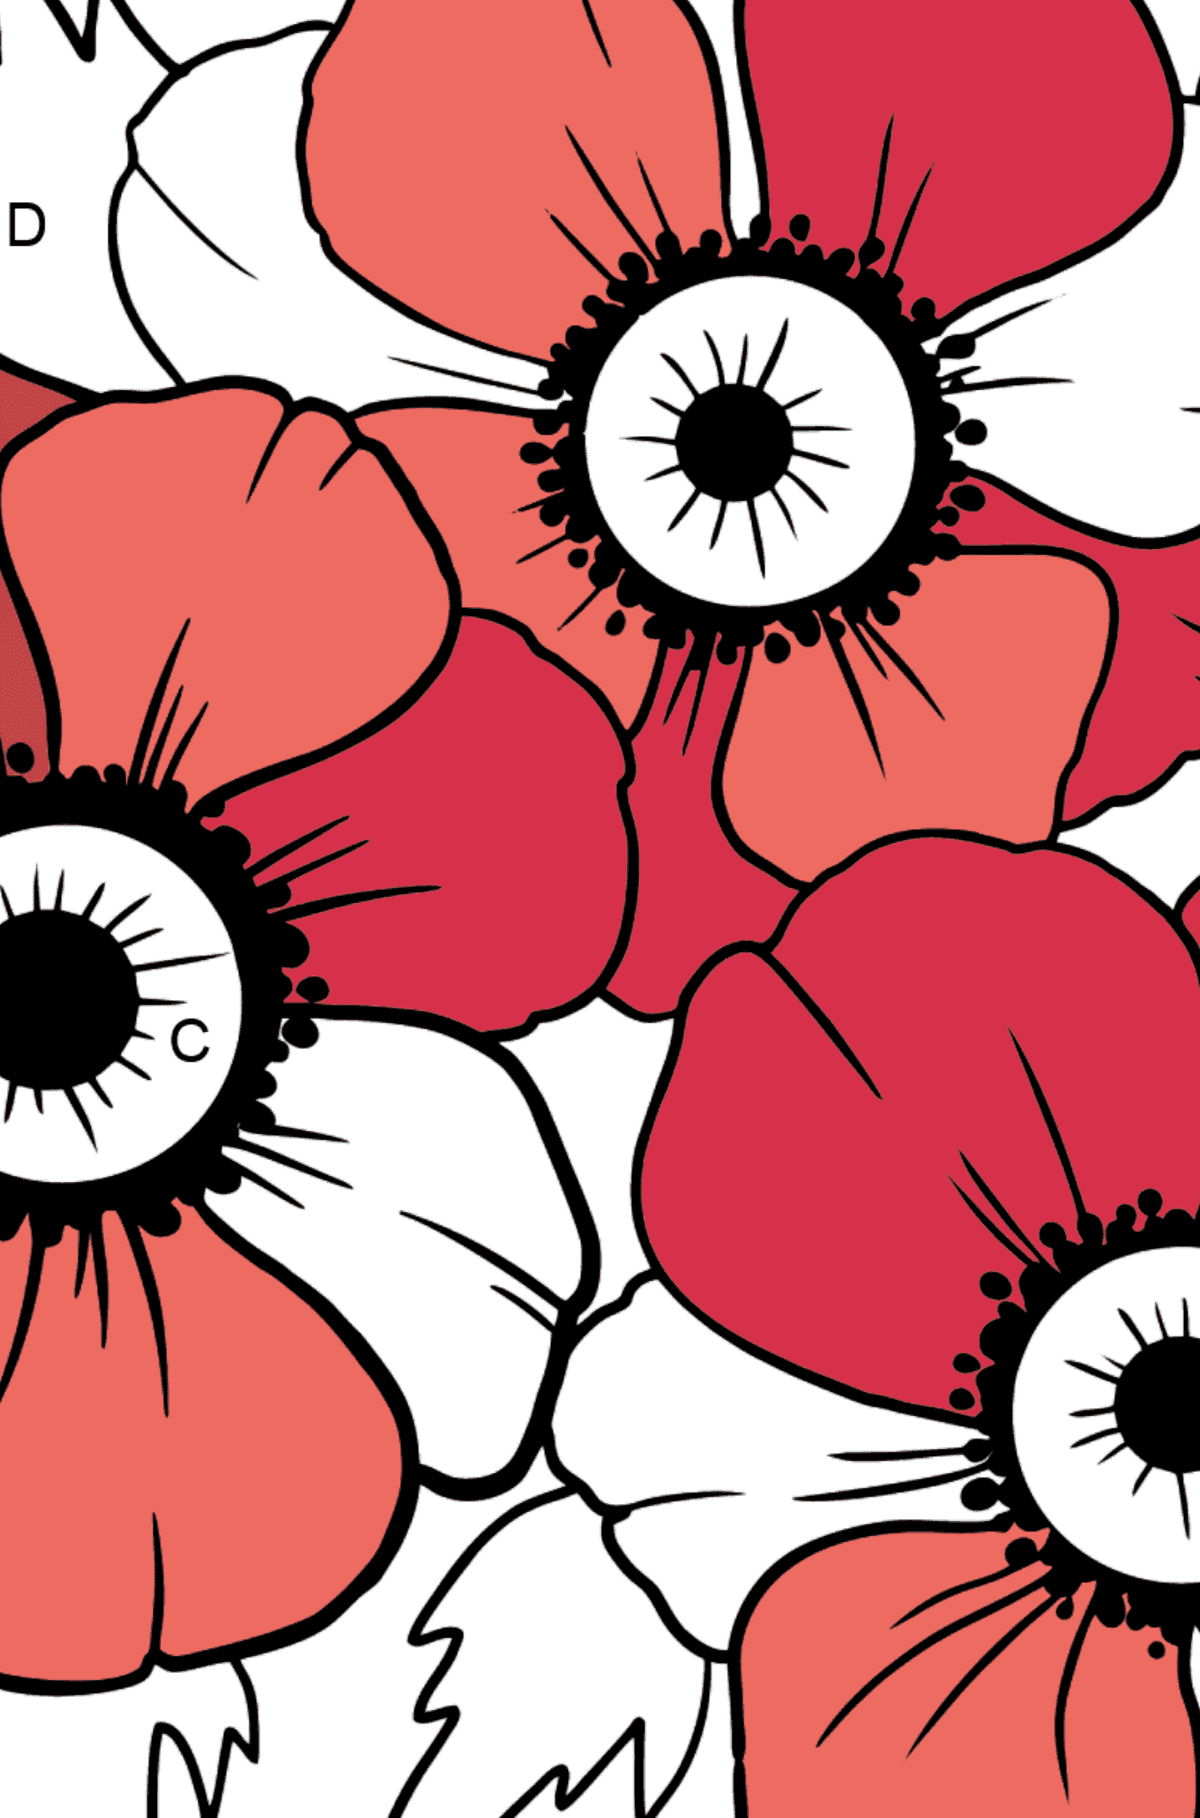 Coloring Page with big flower - A Red and Pink Anemone Coronaria - Coloring by Letters for Kids